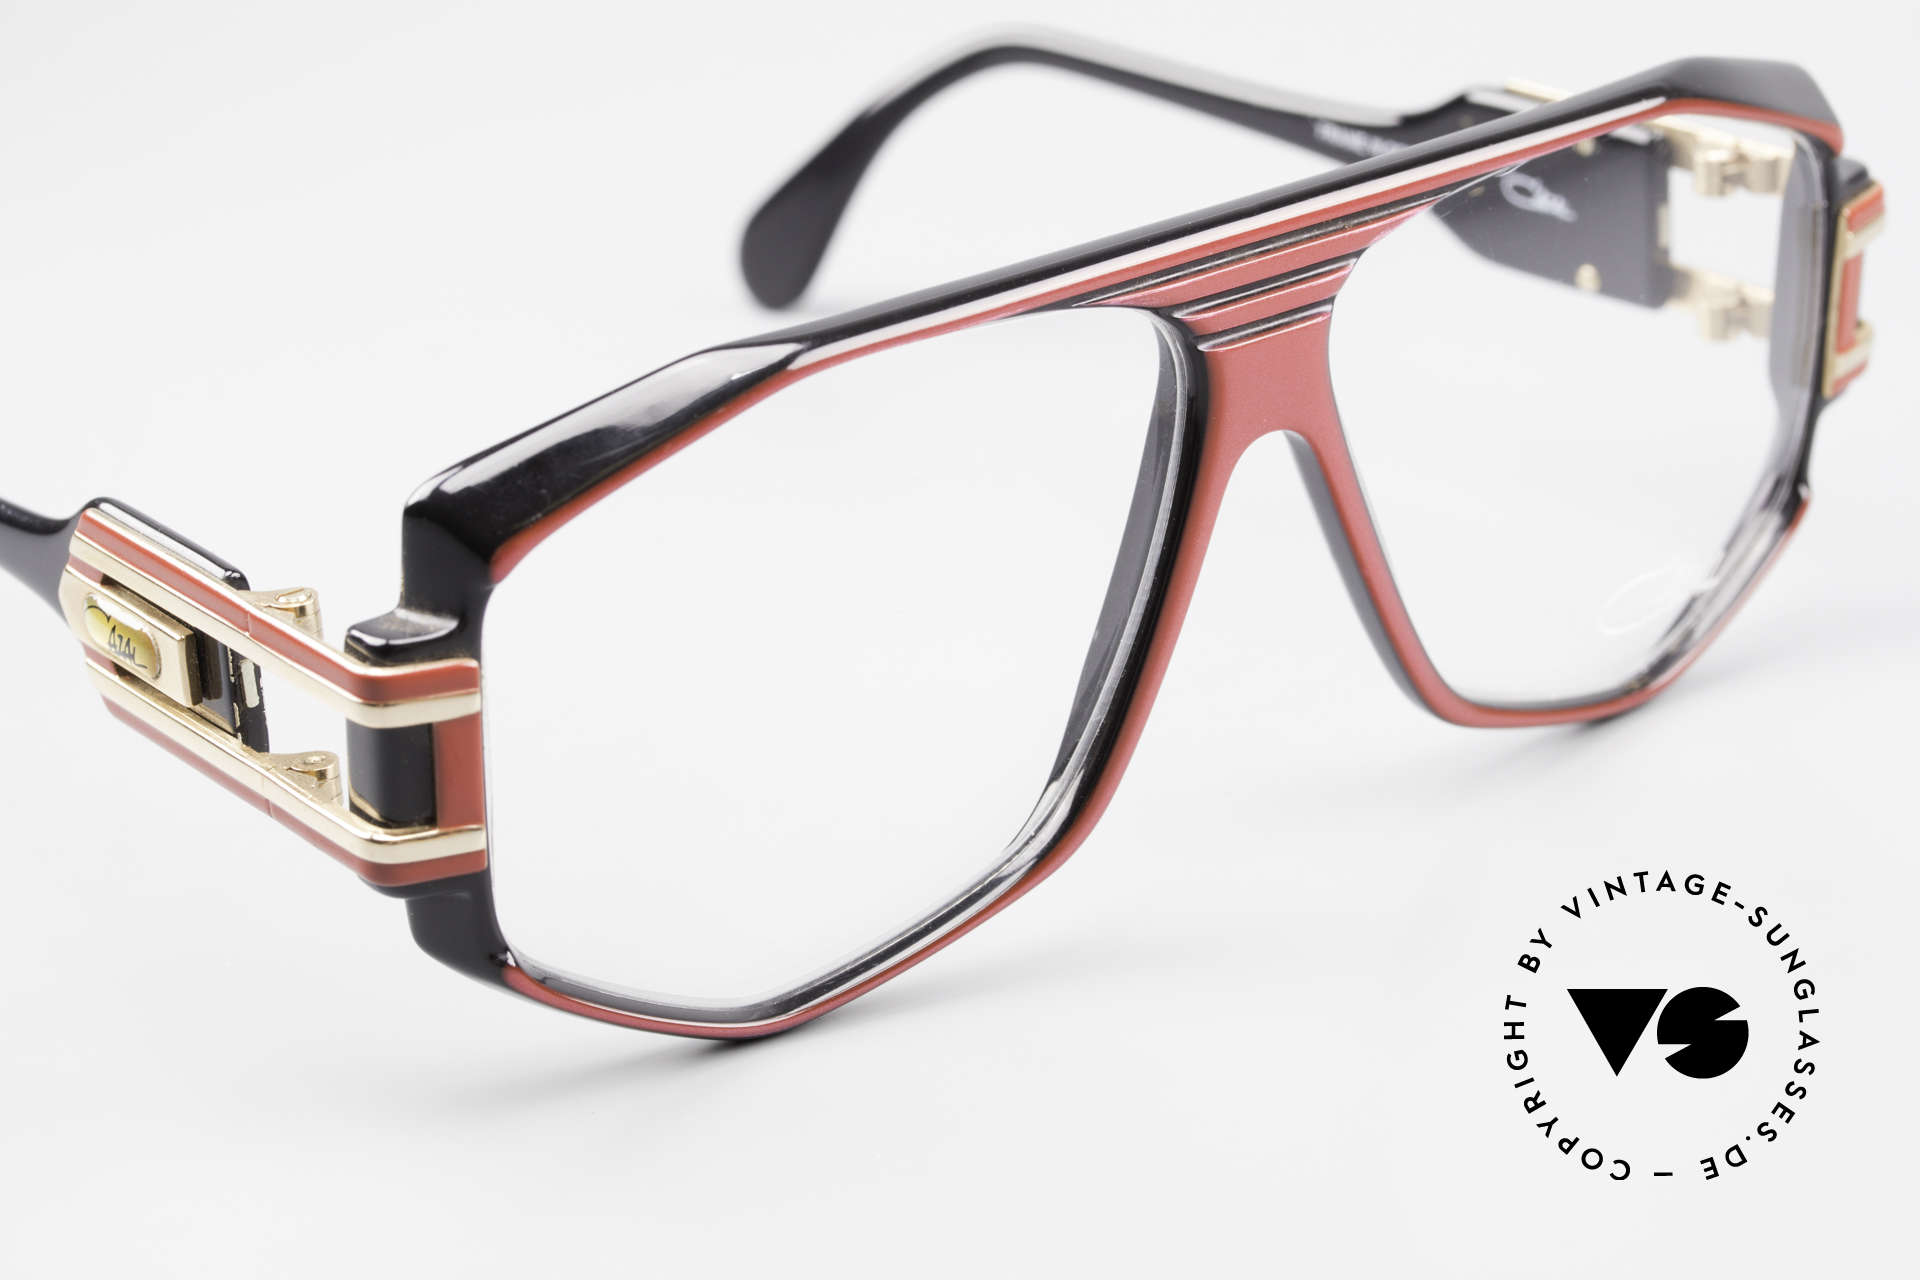 Cazal 163 West Germany 1980's Frame, NO retro or reissue, but a 35 years old ORIGINAL!, Made for Men